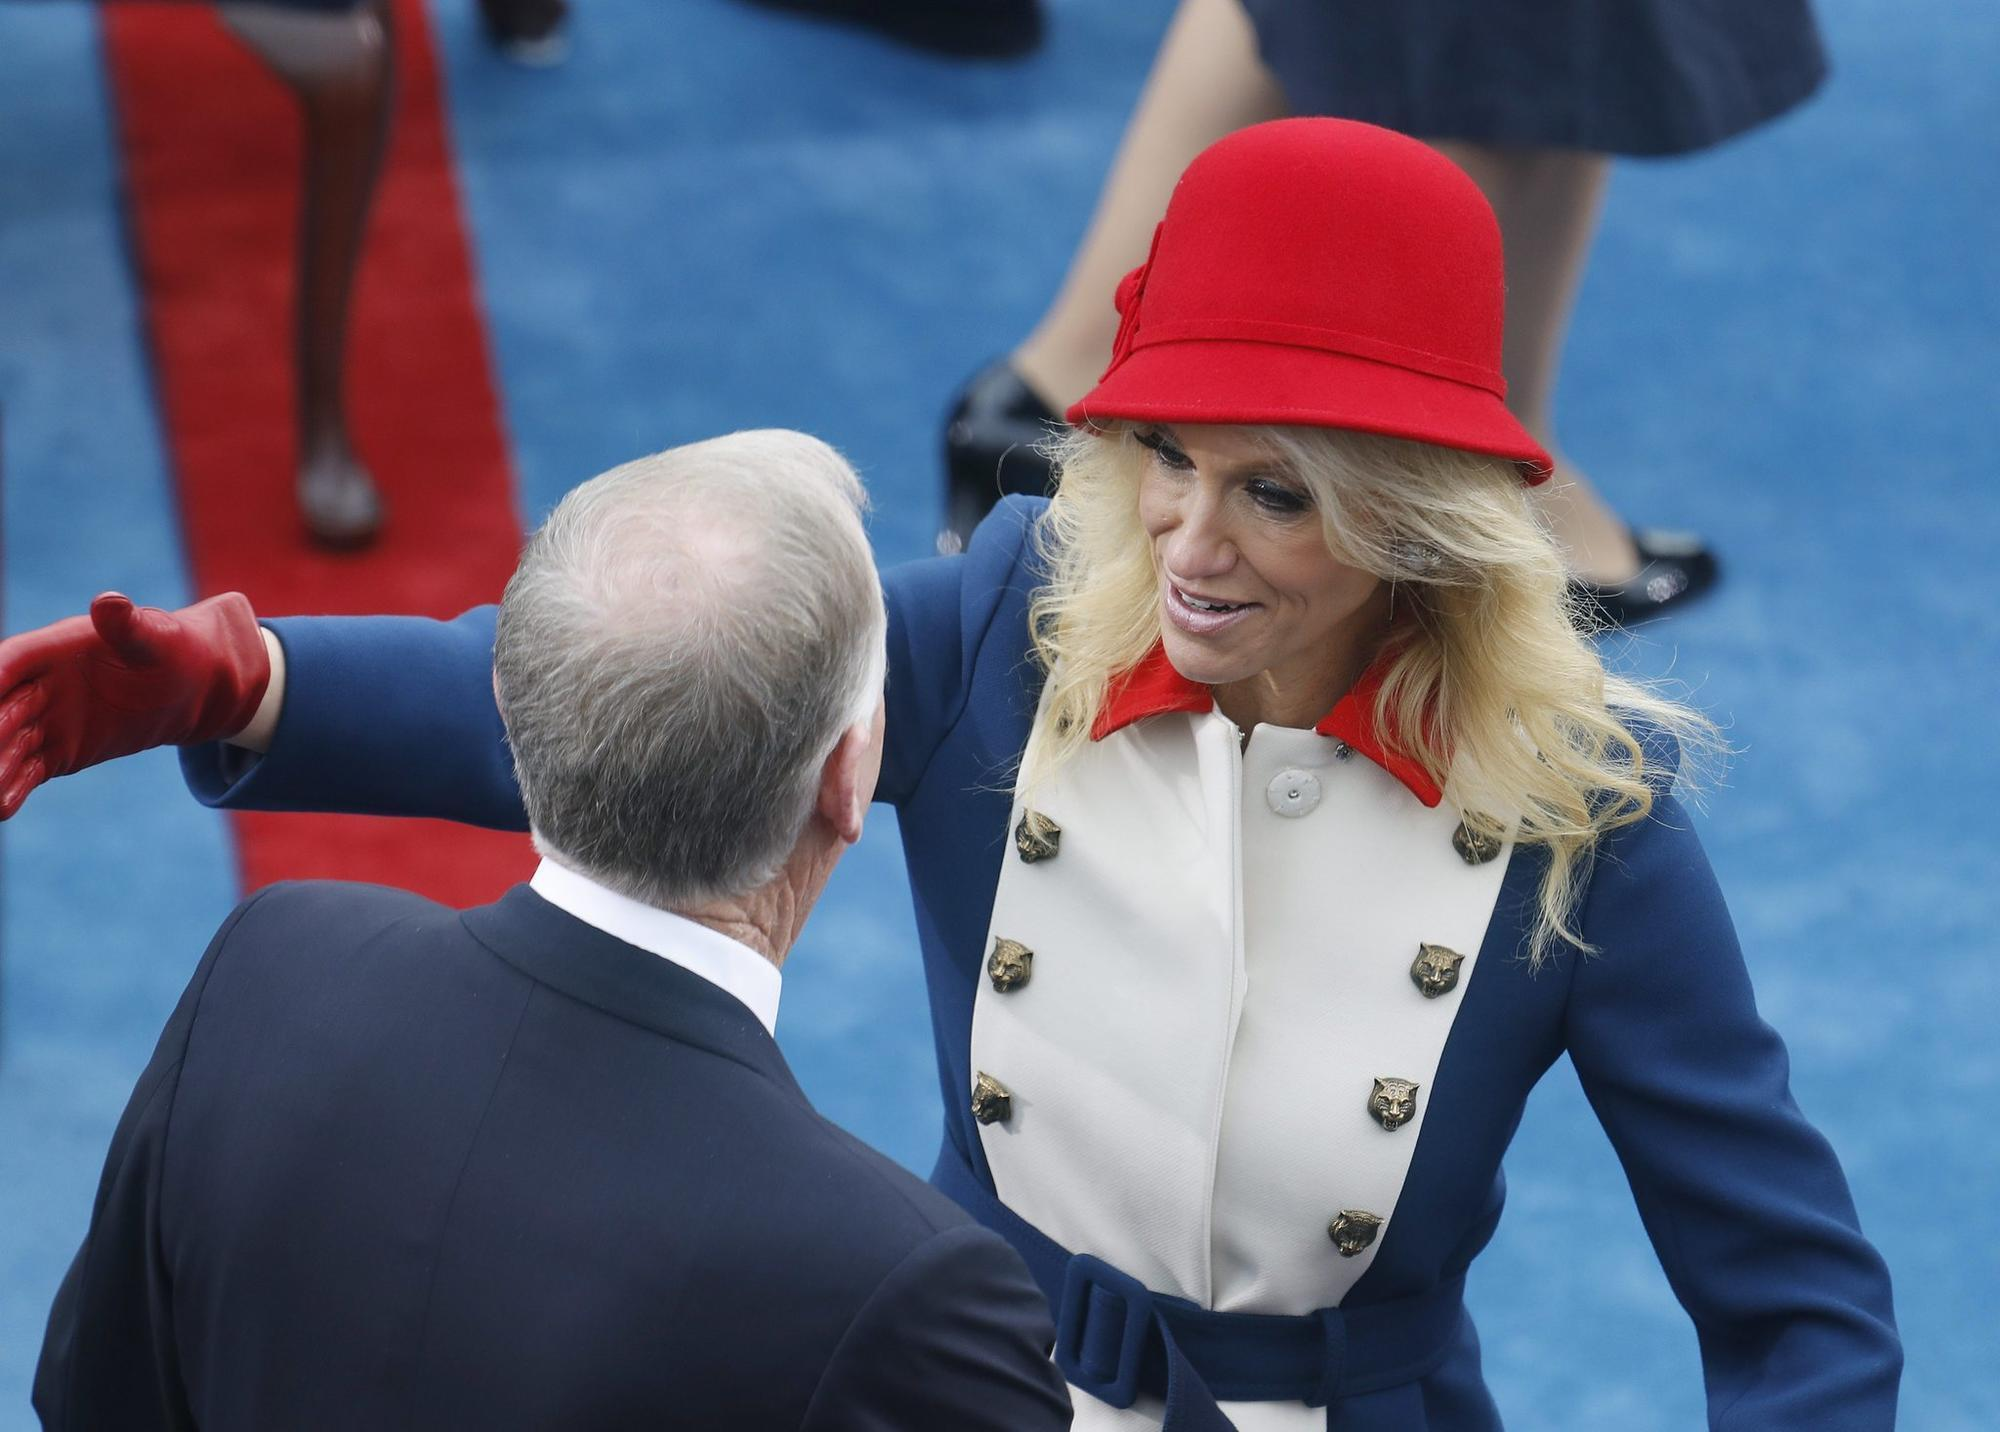 The cat head buttons on Kellyanne Conway's military coat